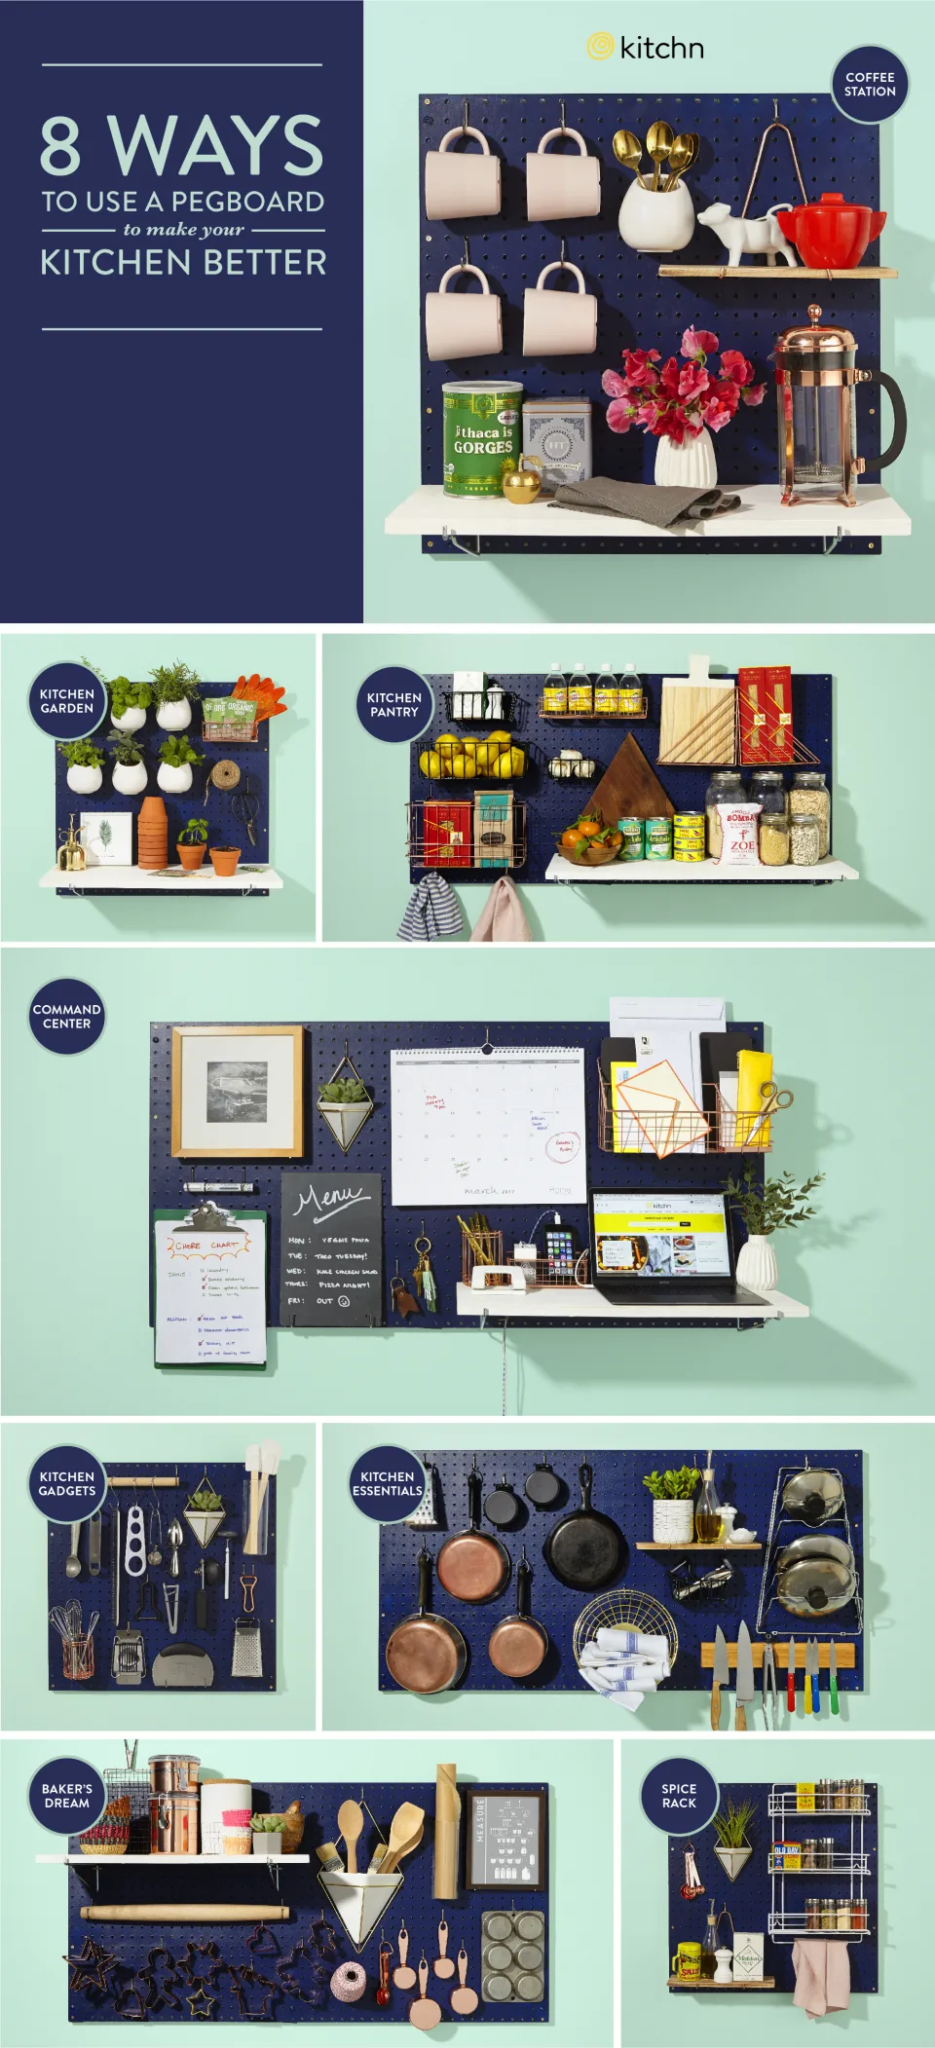 Ways to style a kitchen pegboard